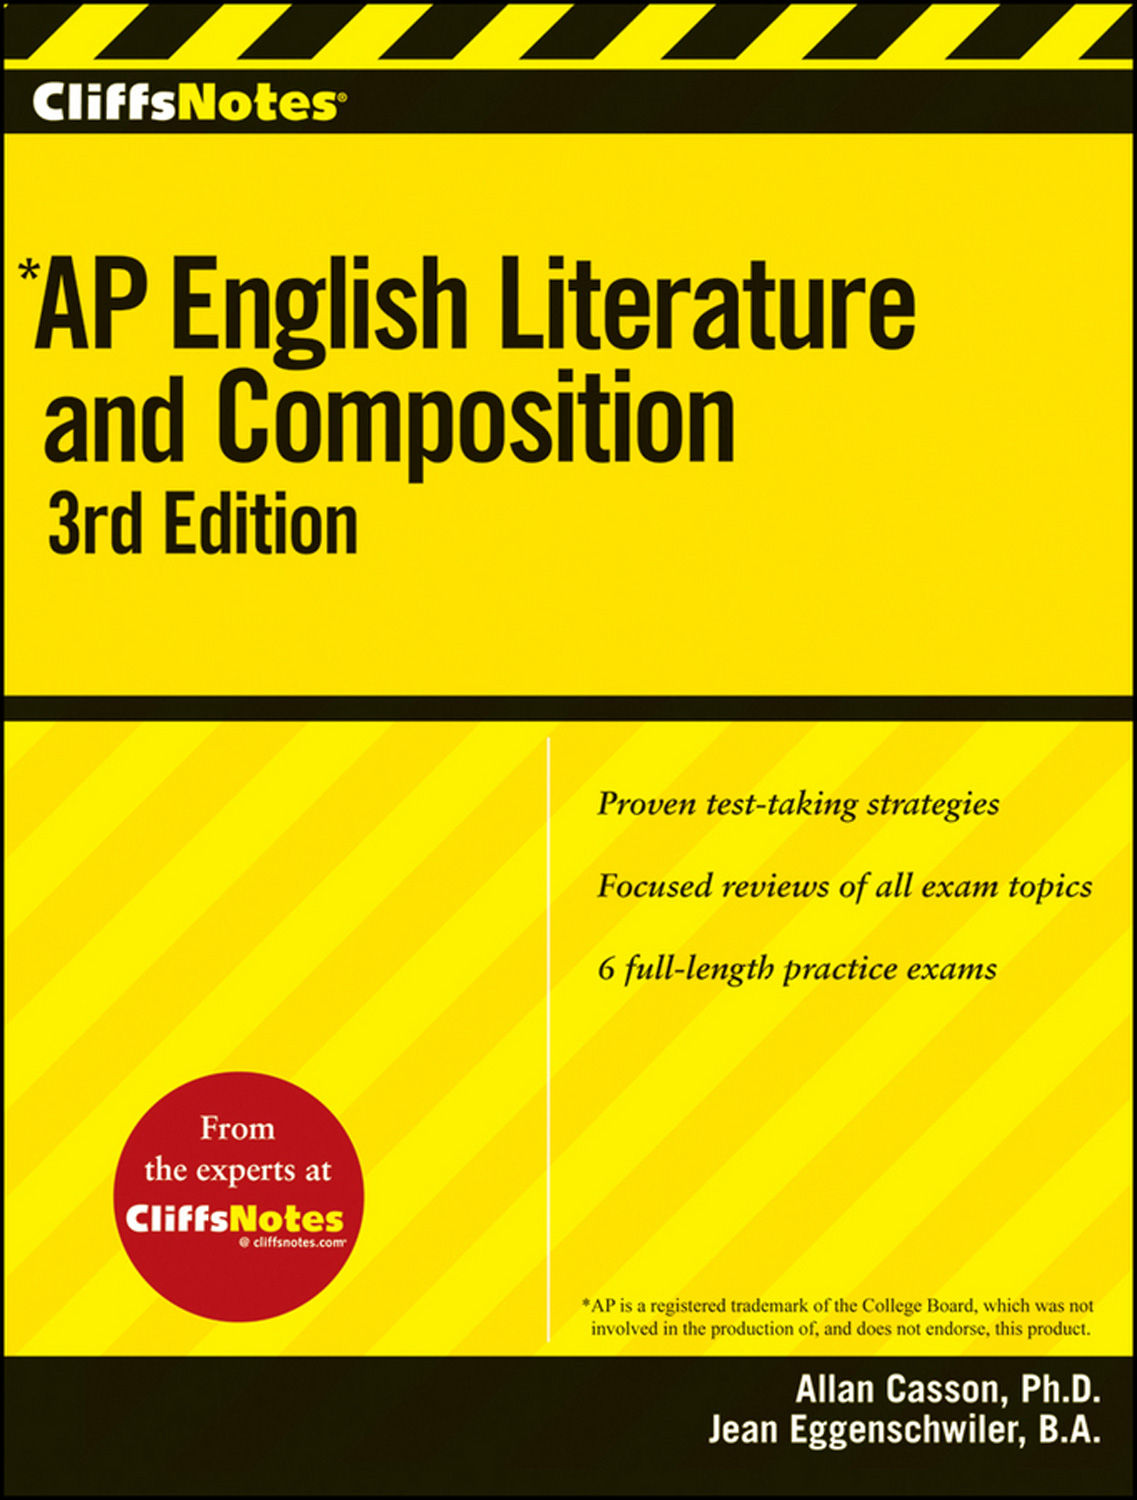 2010 ap english literature and composition essays Writing a literary analysis essay is about textual analysis, not prompt analysis  too often  is obviously true for an ap lit course, so when students write about  literary texts, they  prompt on exile from the 2010 ap lit test here are a couple .